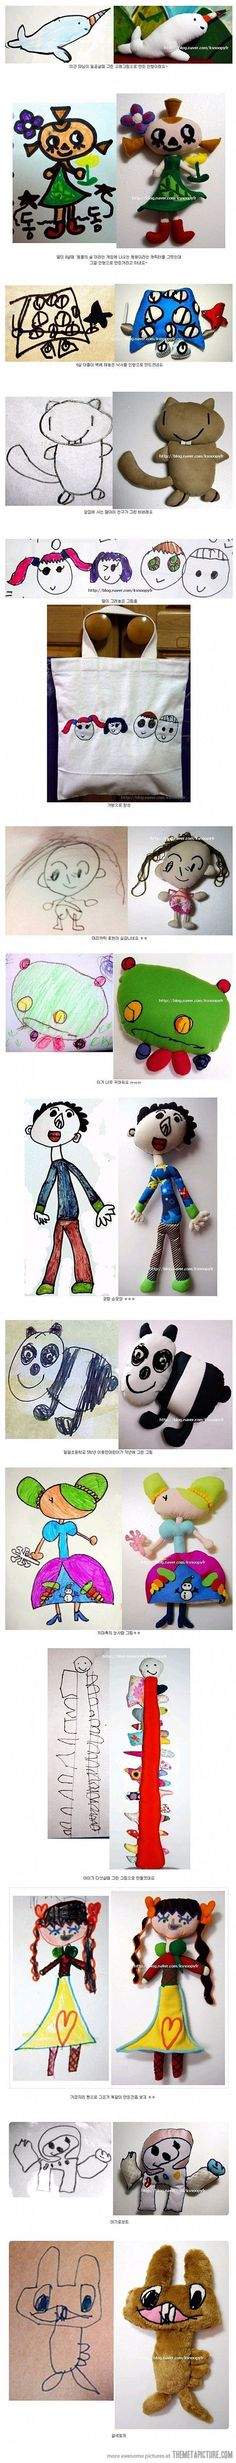 Make your children's drawings into real toys